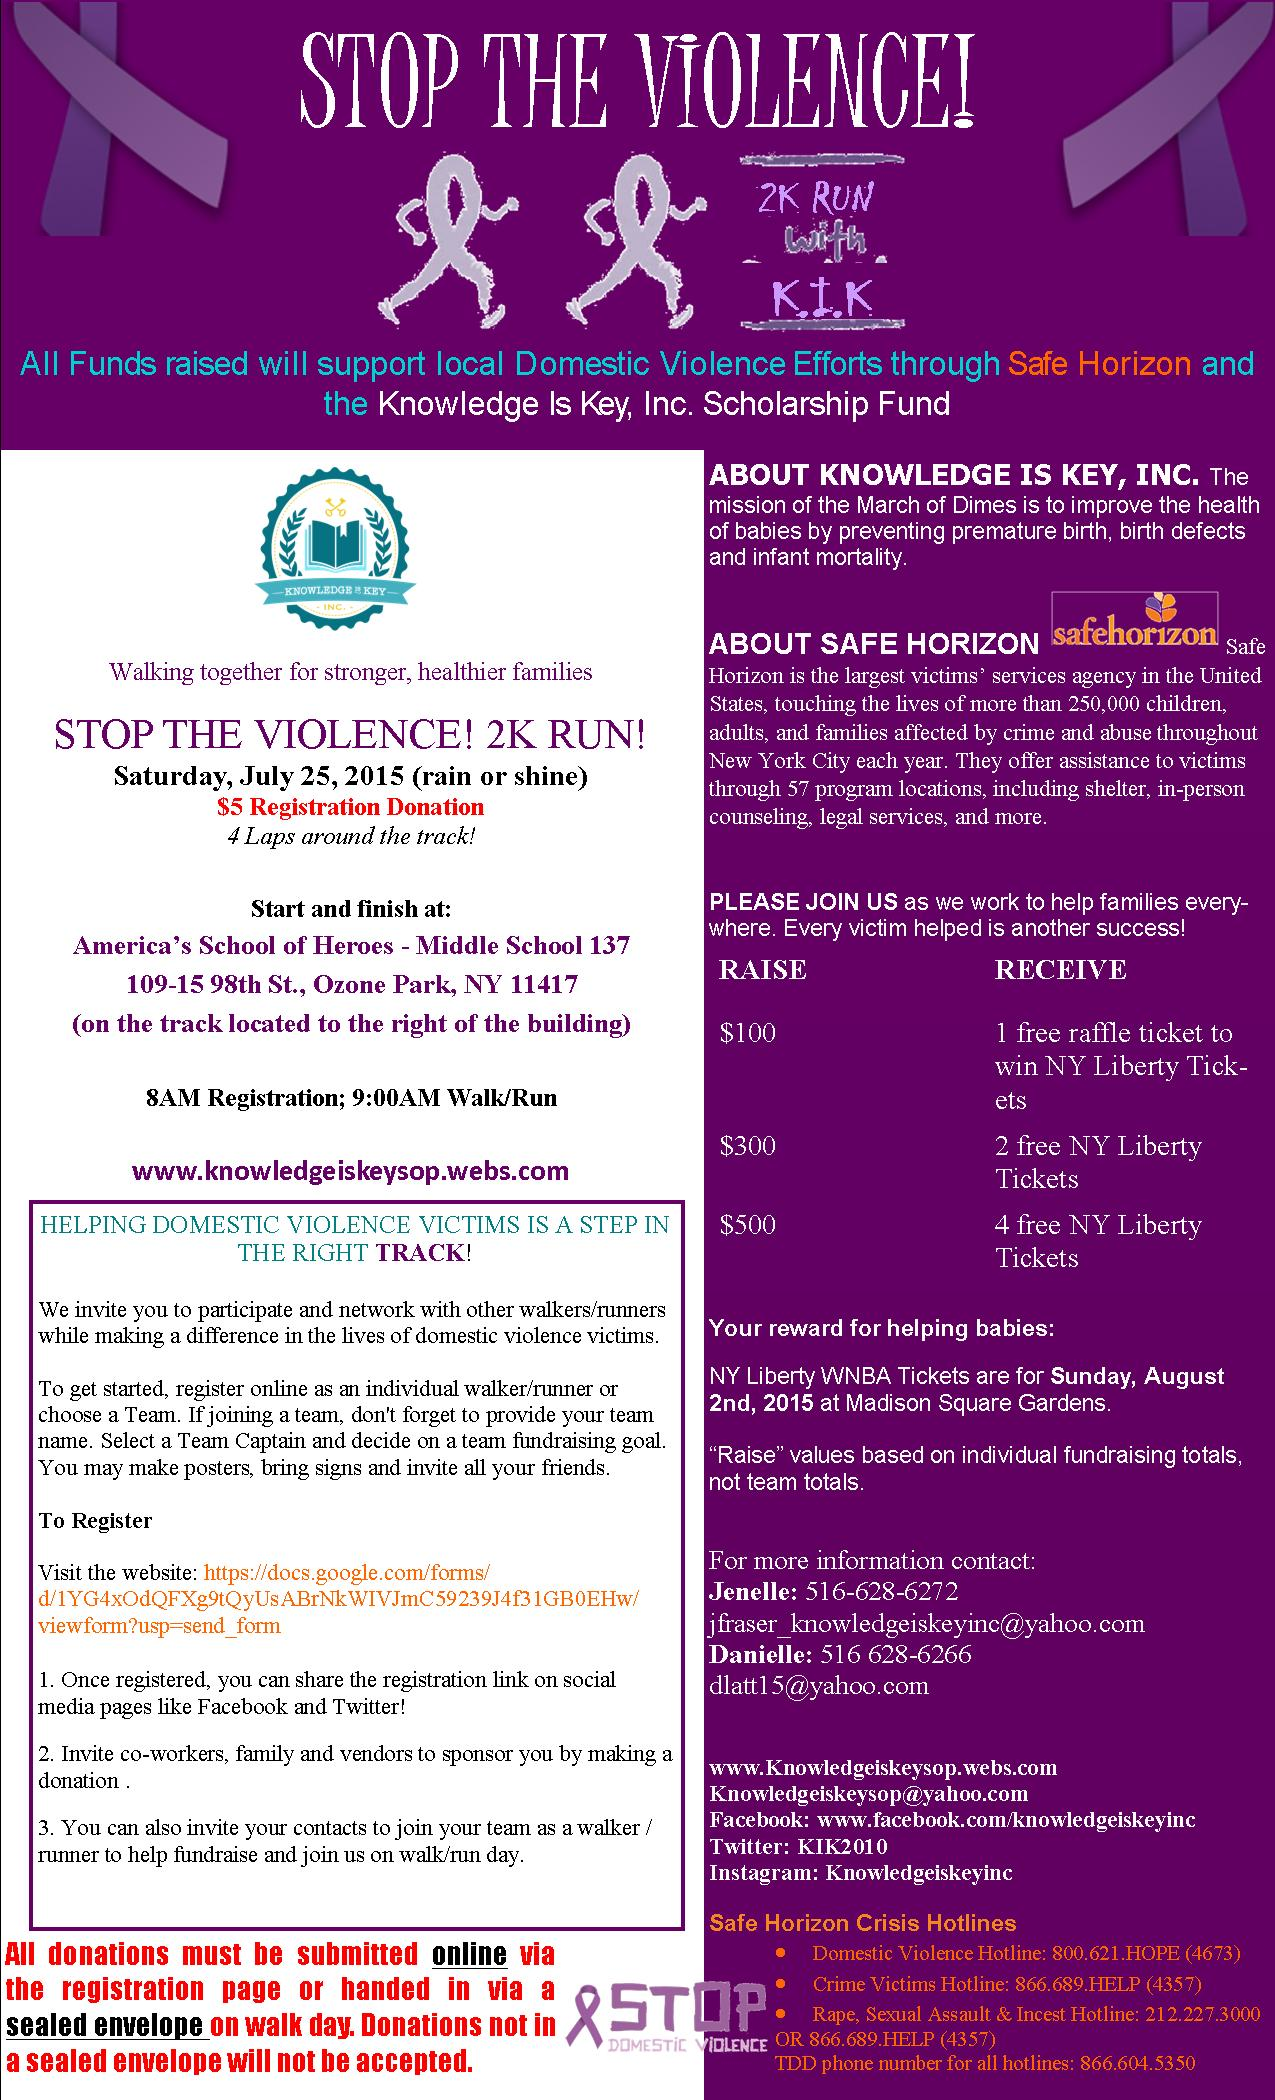 STOP THE VIOLENCE FLYER